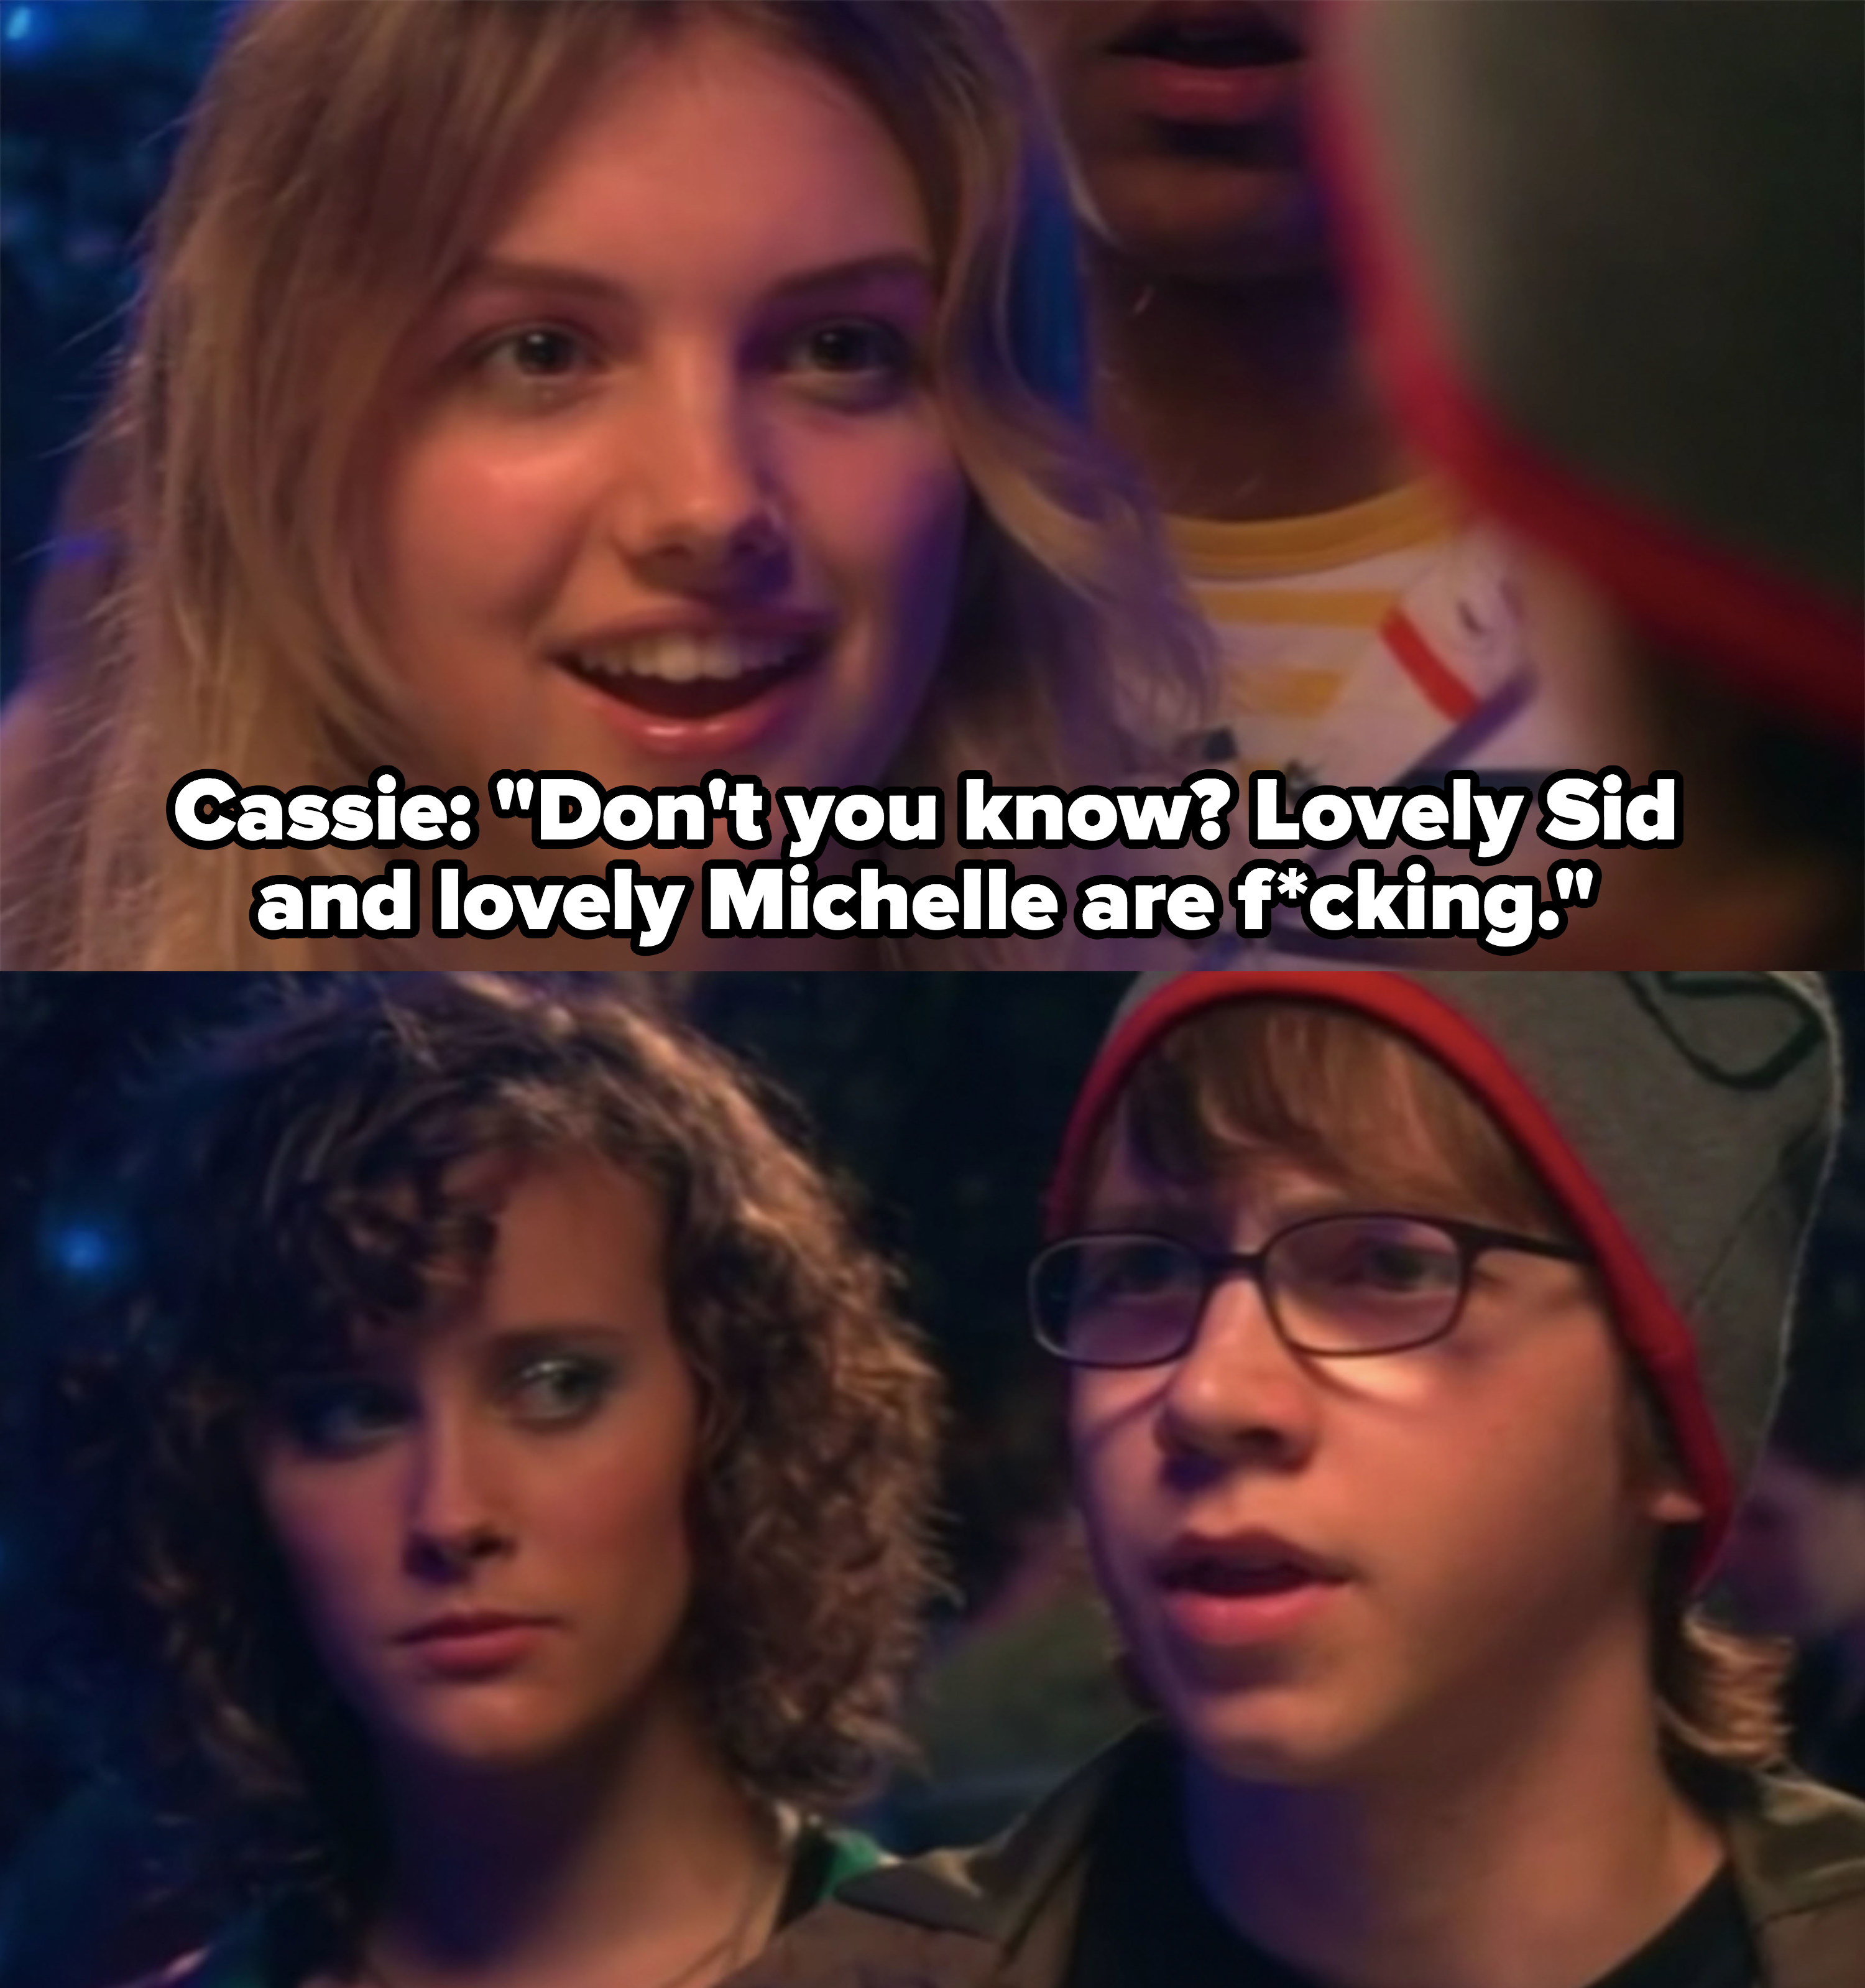 Cassie exposes Sid and Michelle's relationship